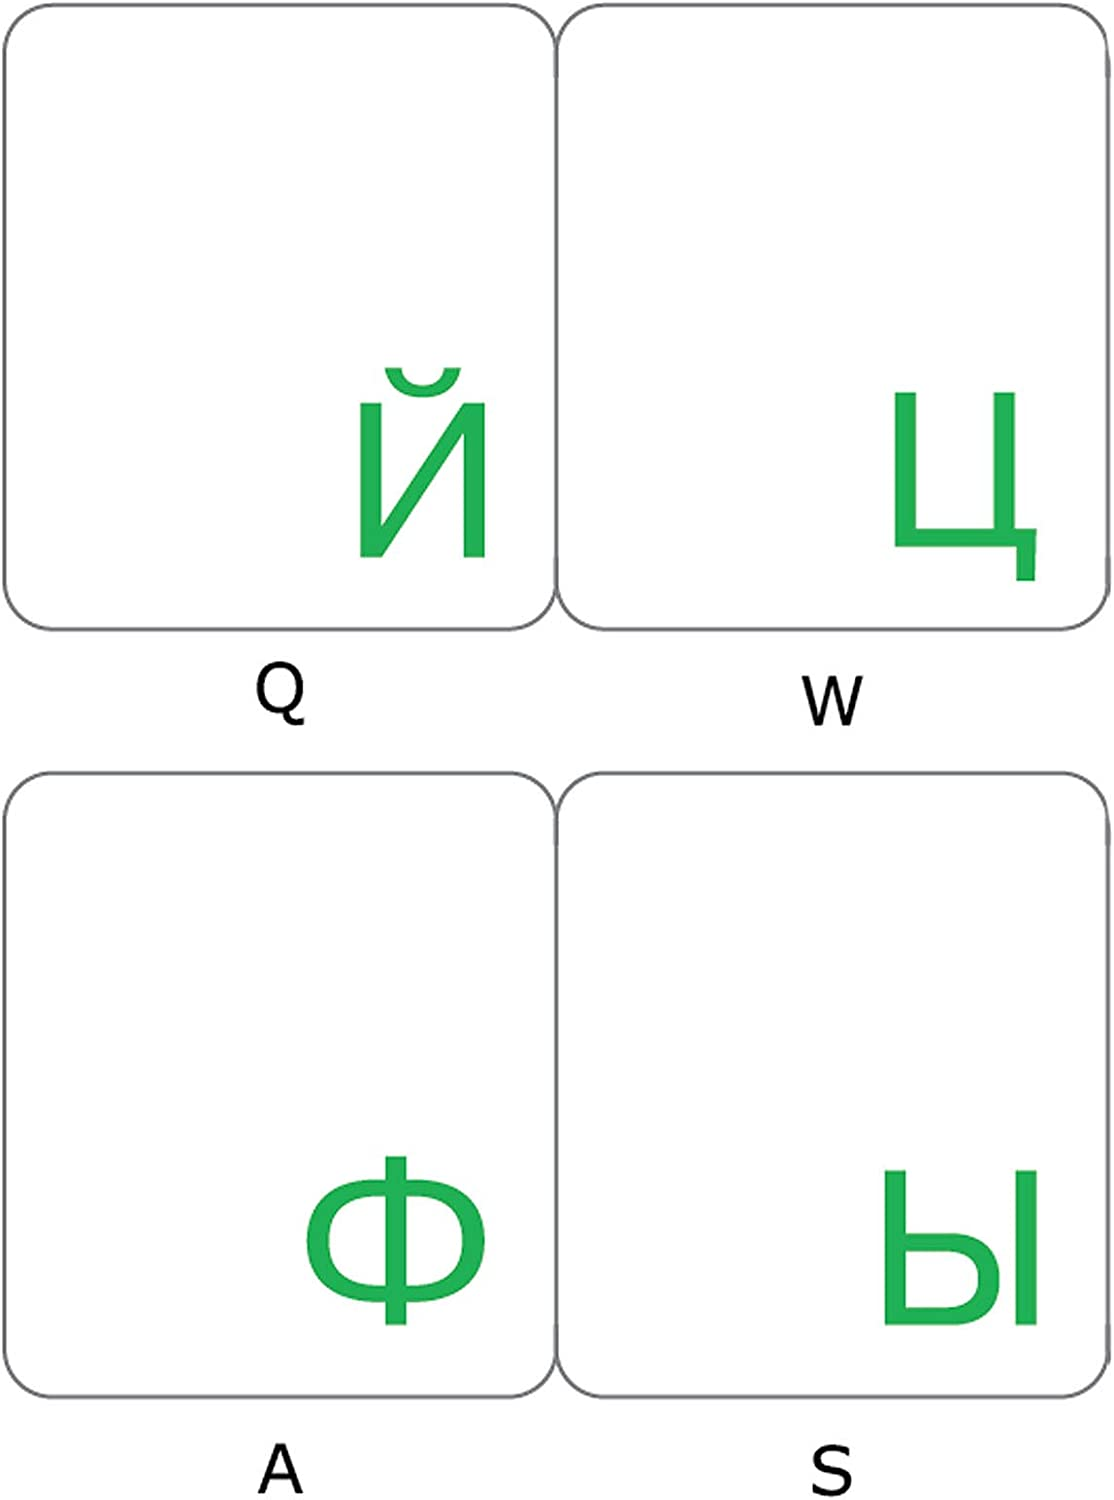 Russian Keyboard Stickers with Transparent Background with Green Lettering for Computer LAPTOPS Desktop